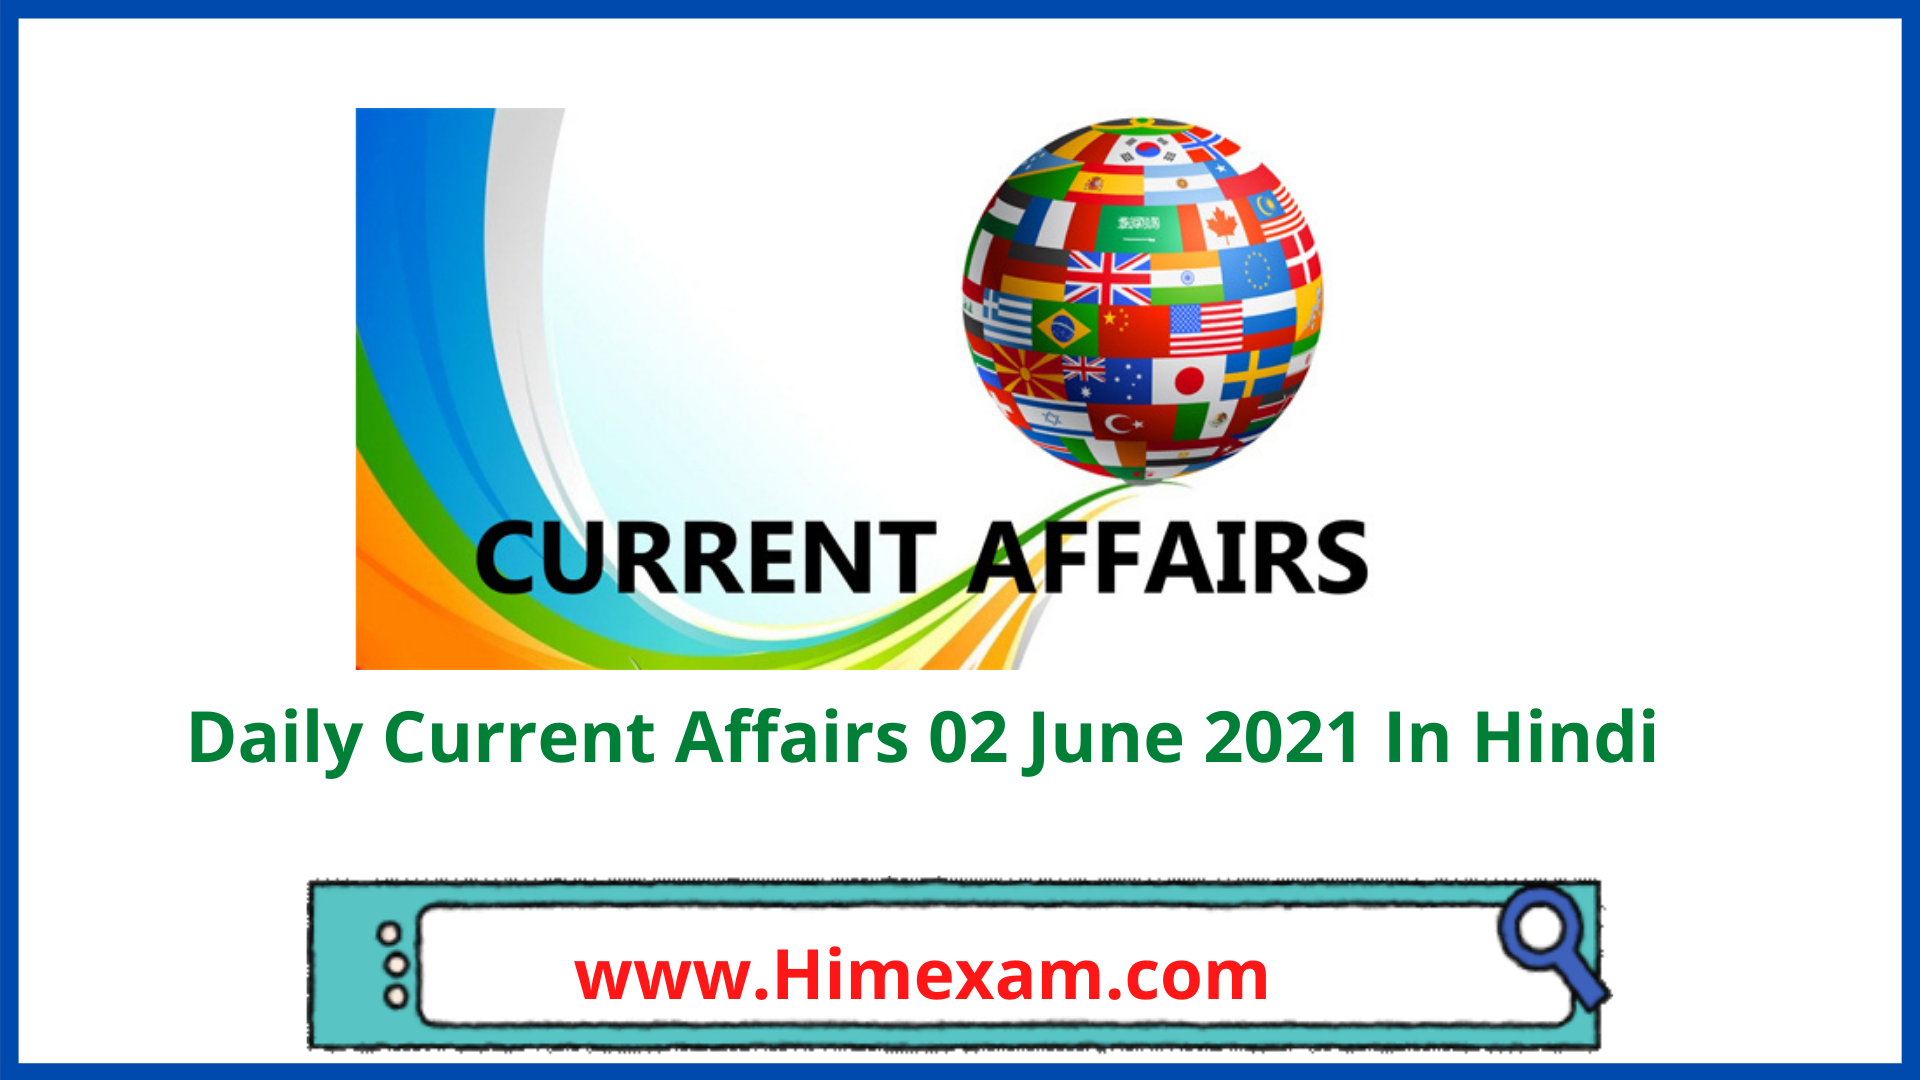 Daily Current Affairs 02 June 2021 In Hindi